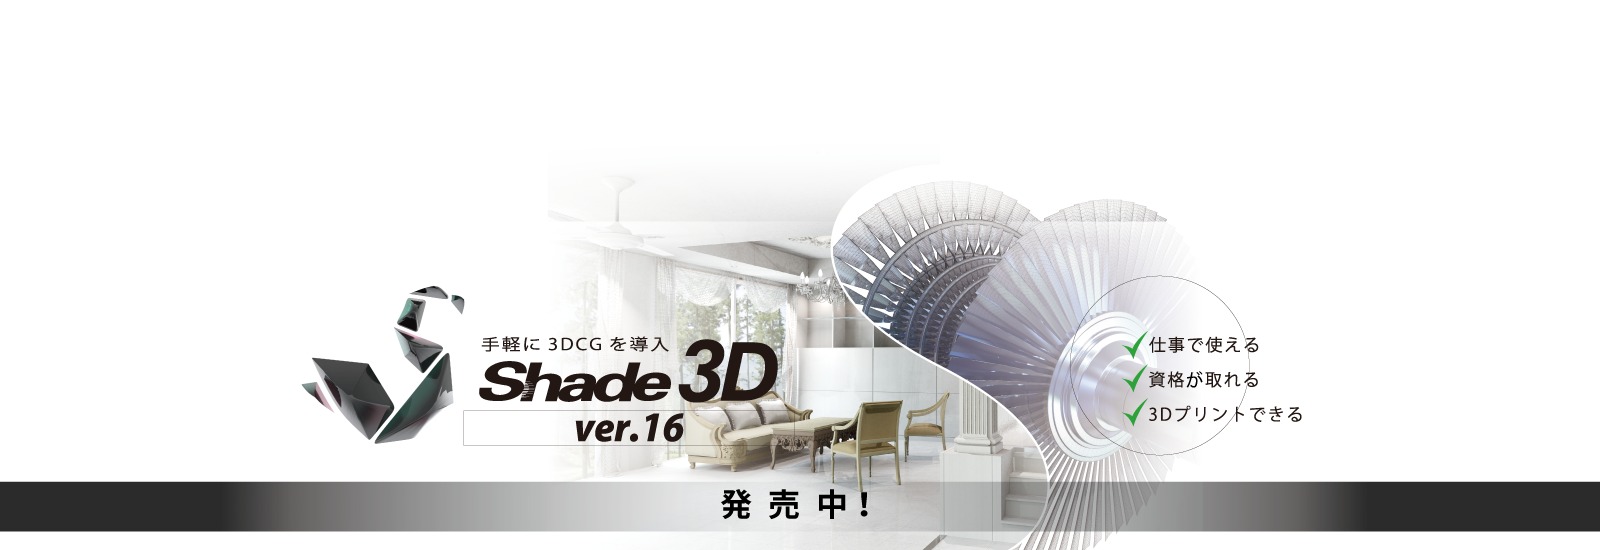 Top Shade3D ver.16 release